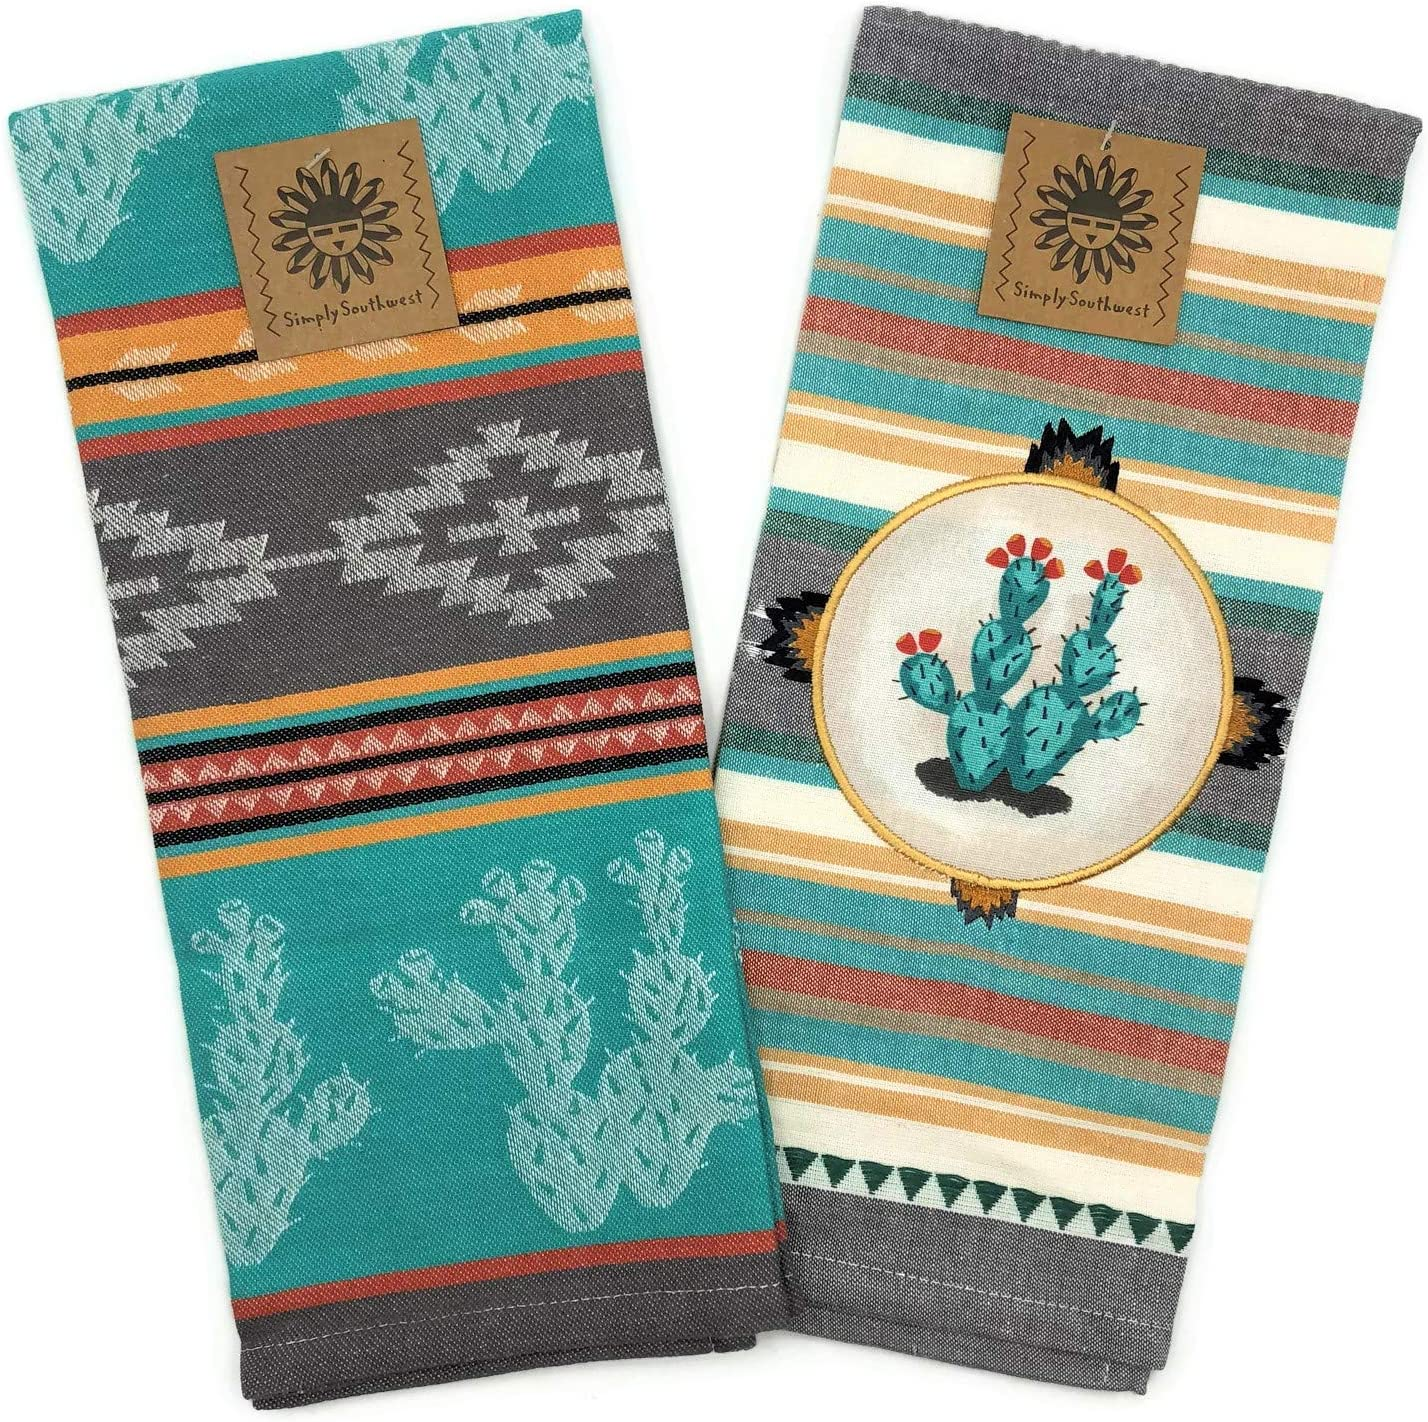 Kay Dee Designs Southwest Craze Appliqued and Jacquard Tea Towel Set